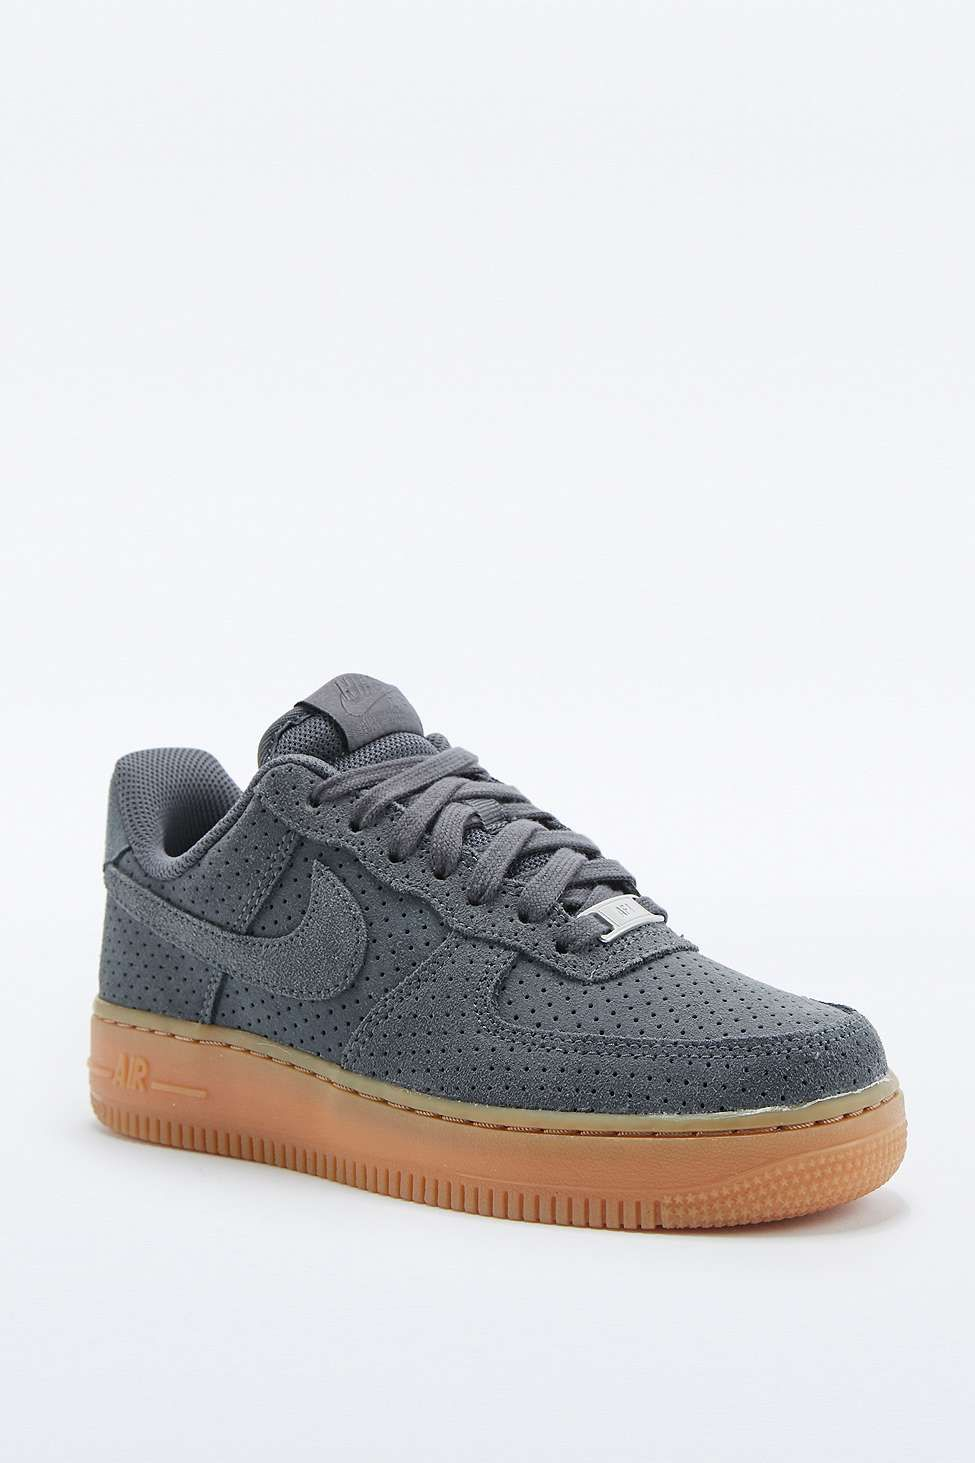 quality design 2883e ba71a Nike Air Force 1 Grey Suede Trainers